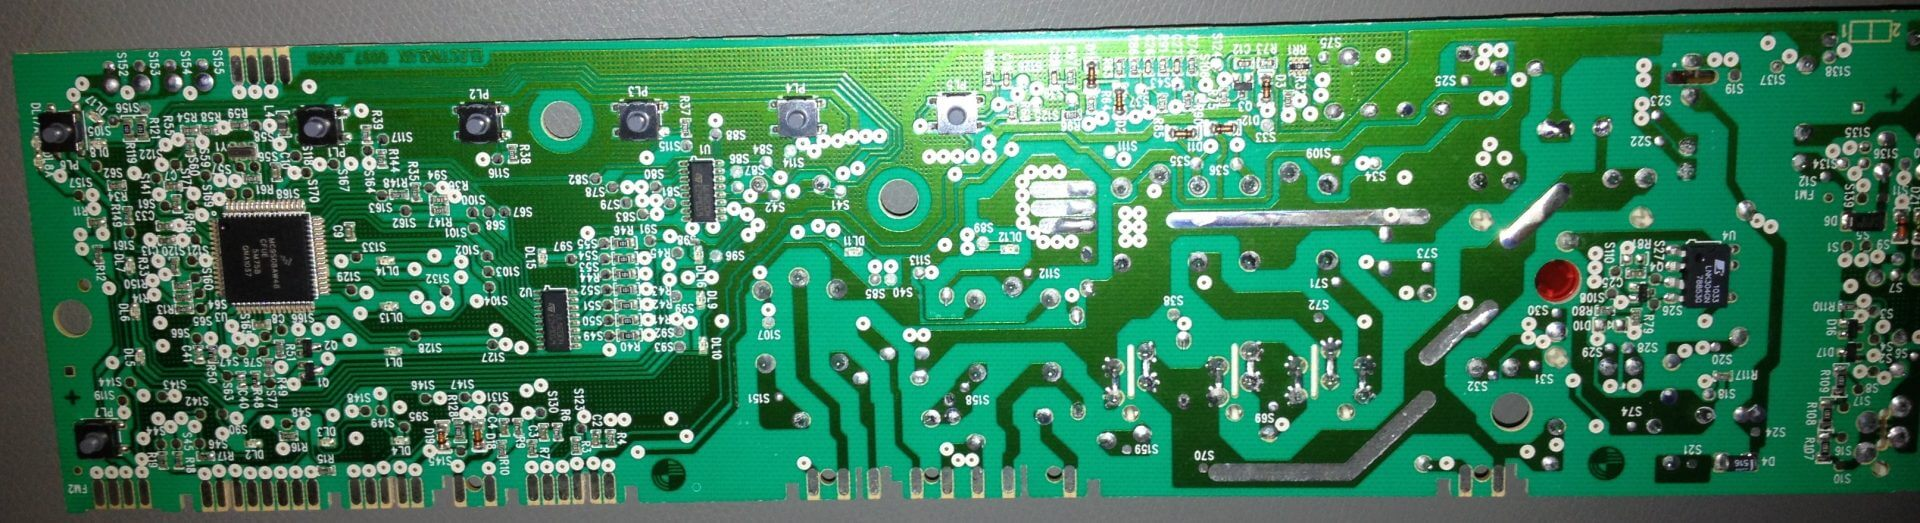 Printed Circuit Board Repairs For Tumble Dryers Aeg Electrolux Cleaning Machine The Back Of A Env 06